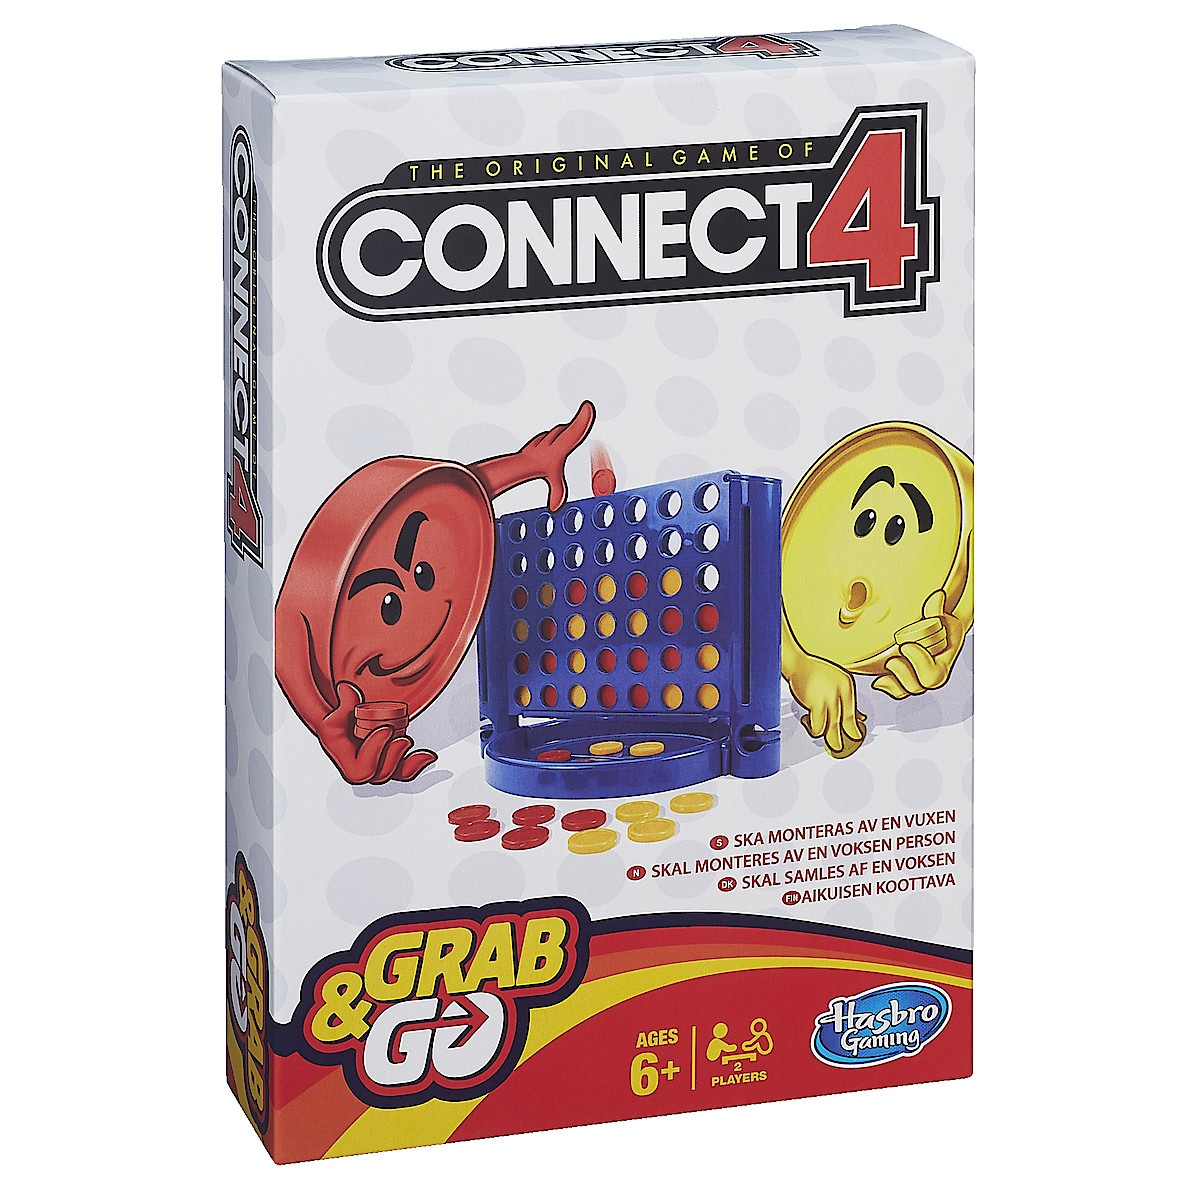 Connect 4 reisespill